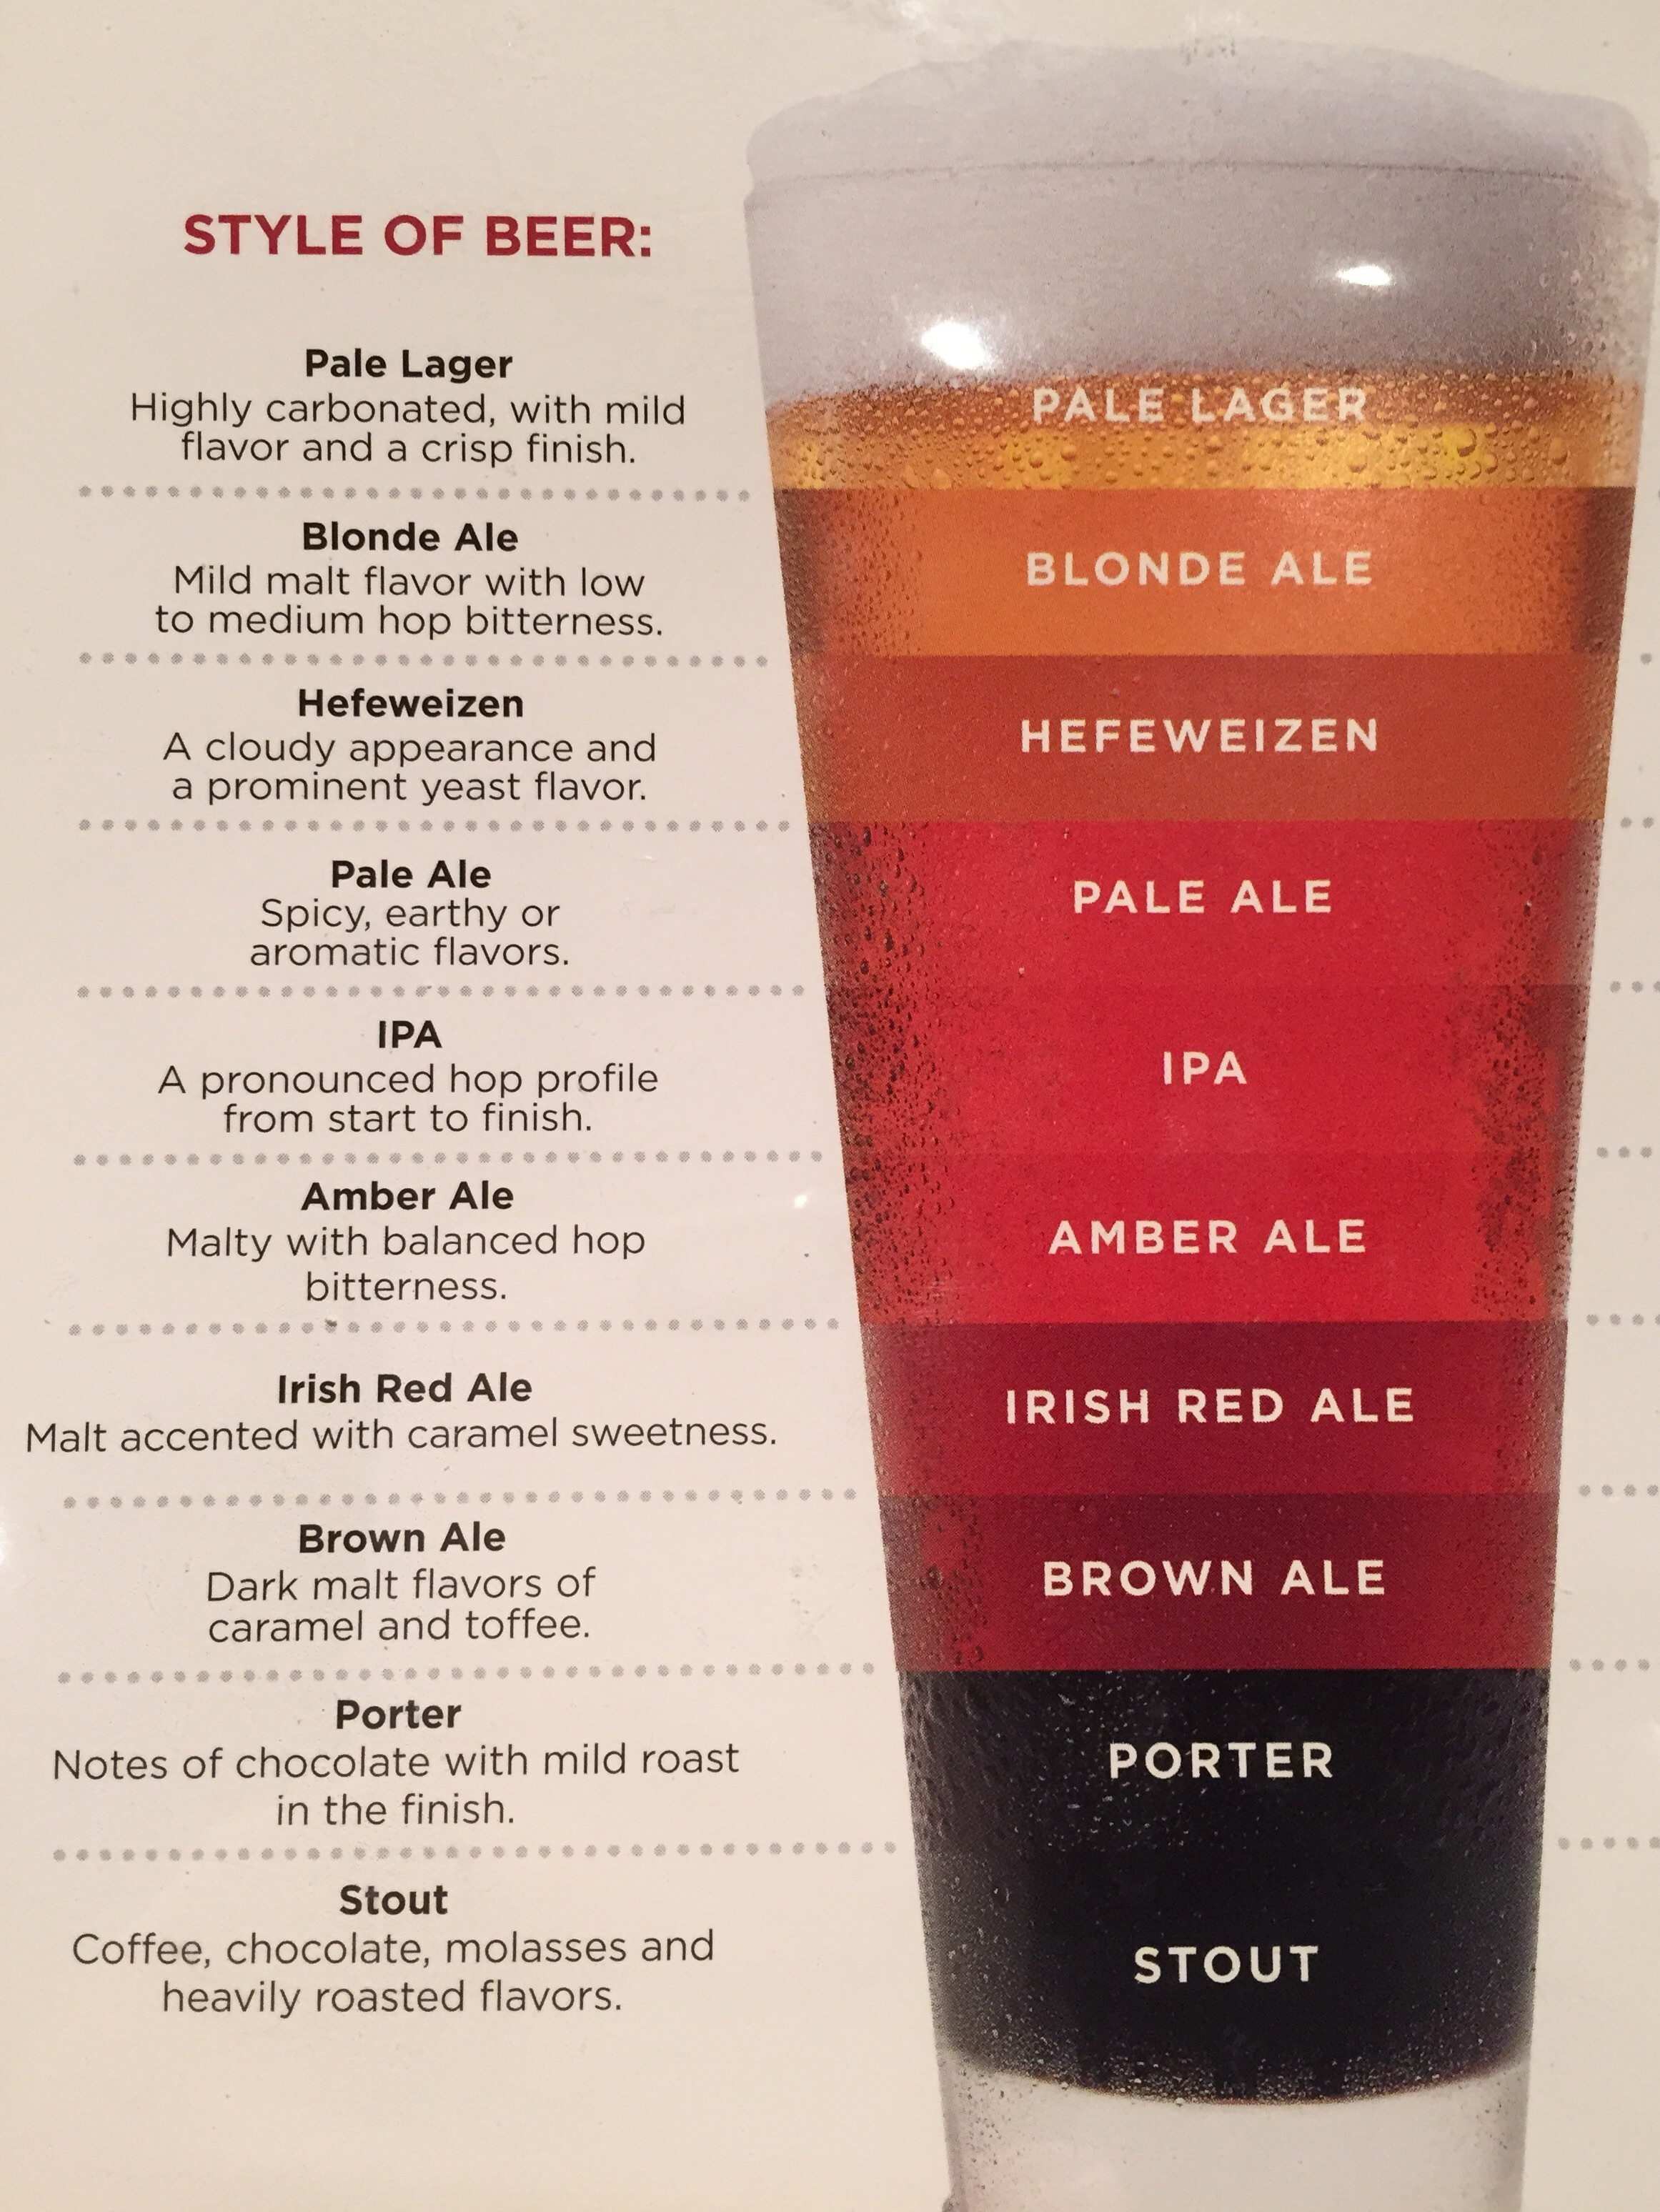 Styles and Flavors of Beer